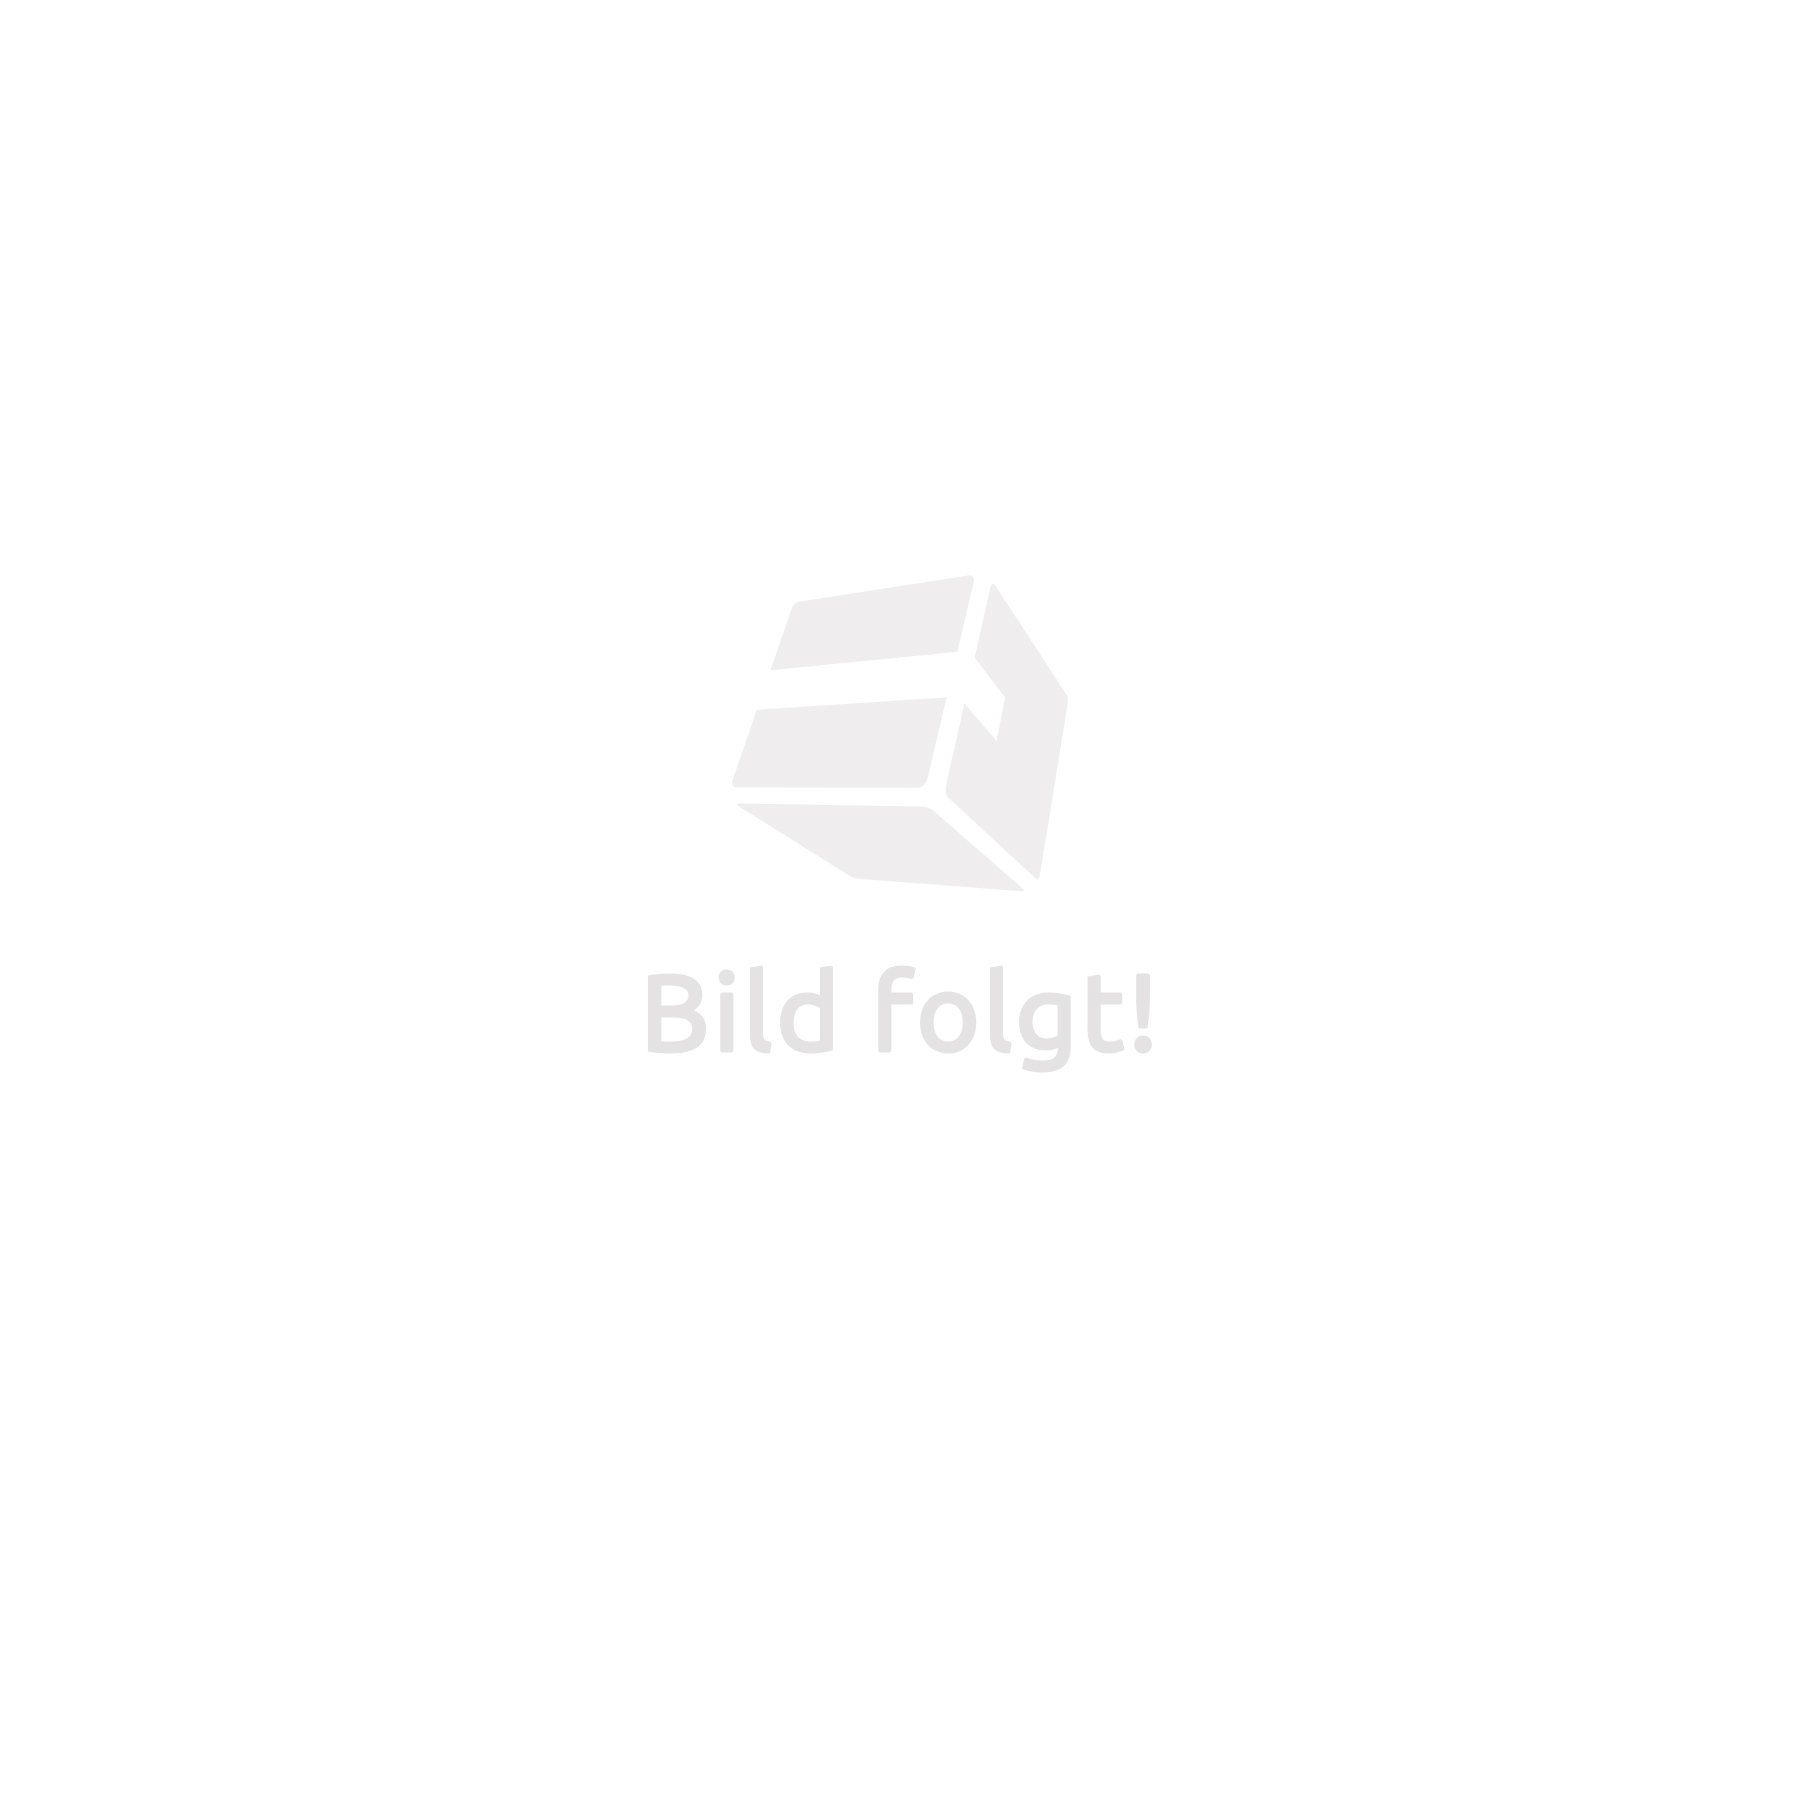 Table de bar, Table de Jardin, Aluminium - Hauteur réglable 5,8 cm Pliable